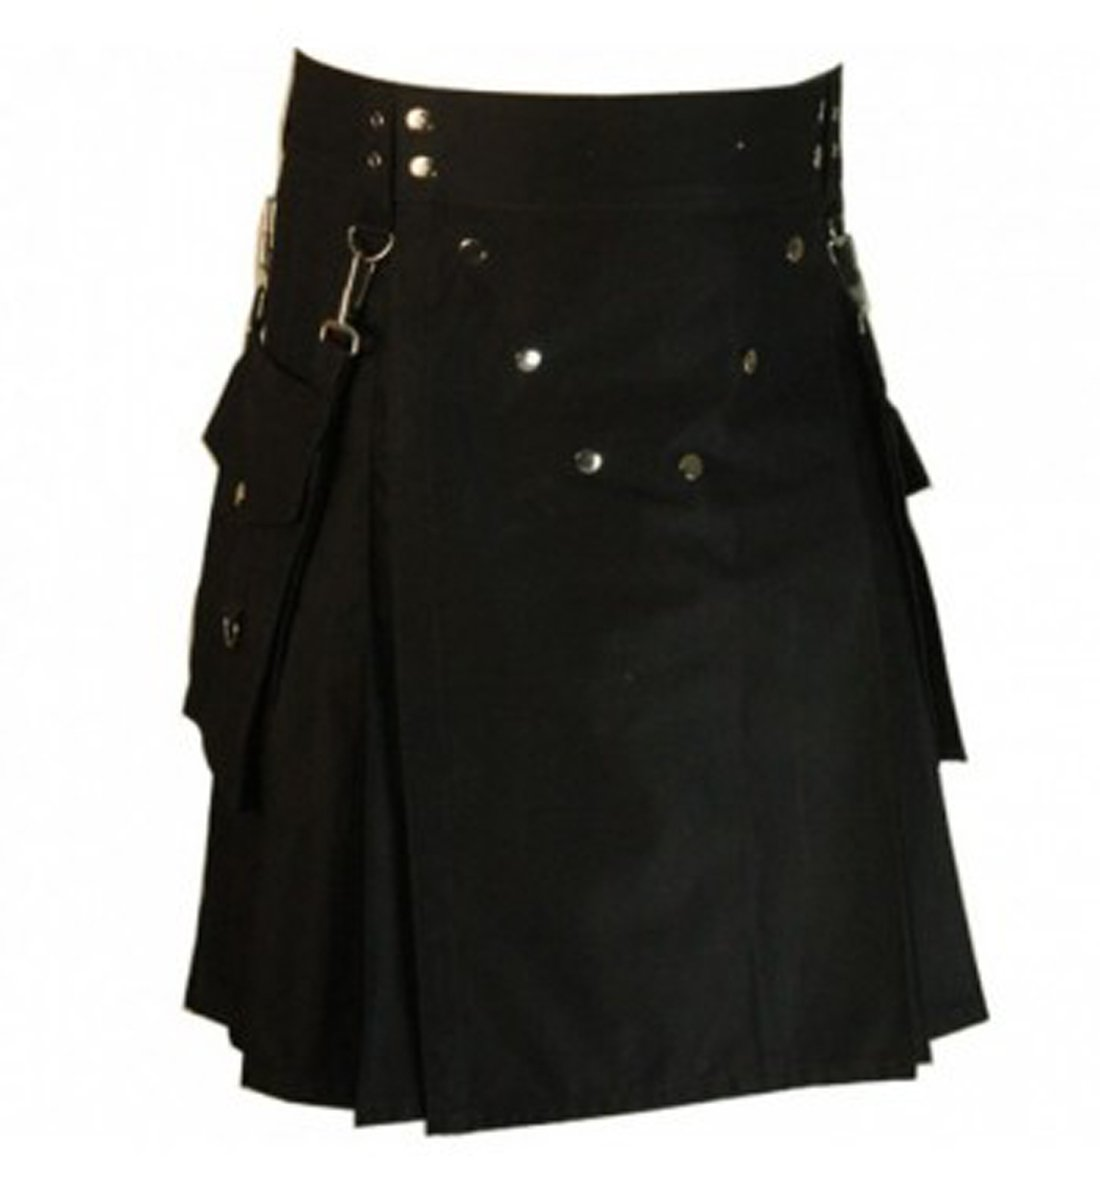 New Black Modern Detachable Pockets Utility Kilt (30)